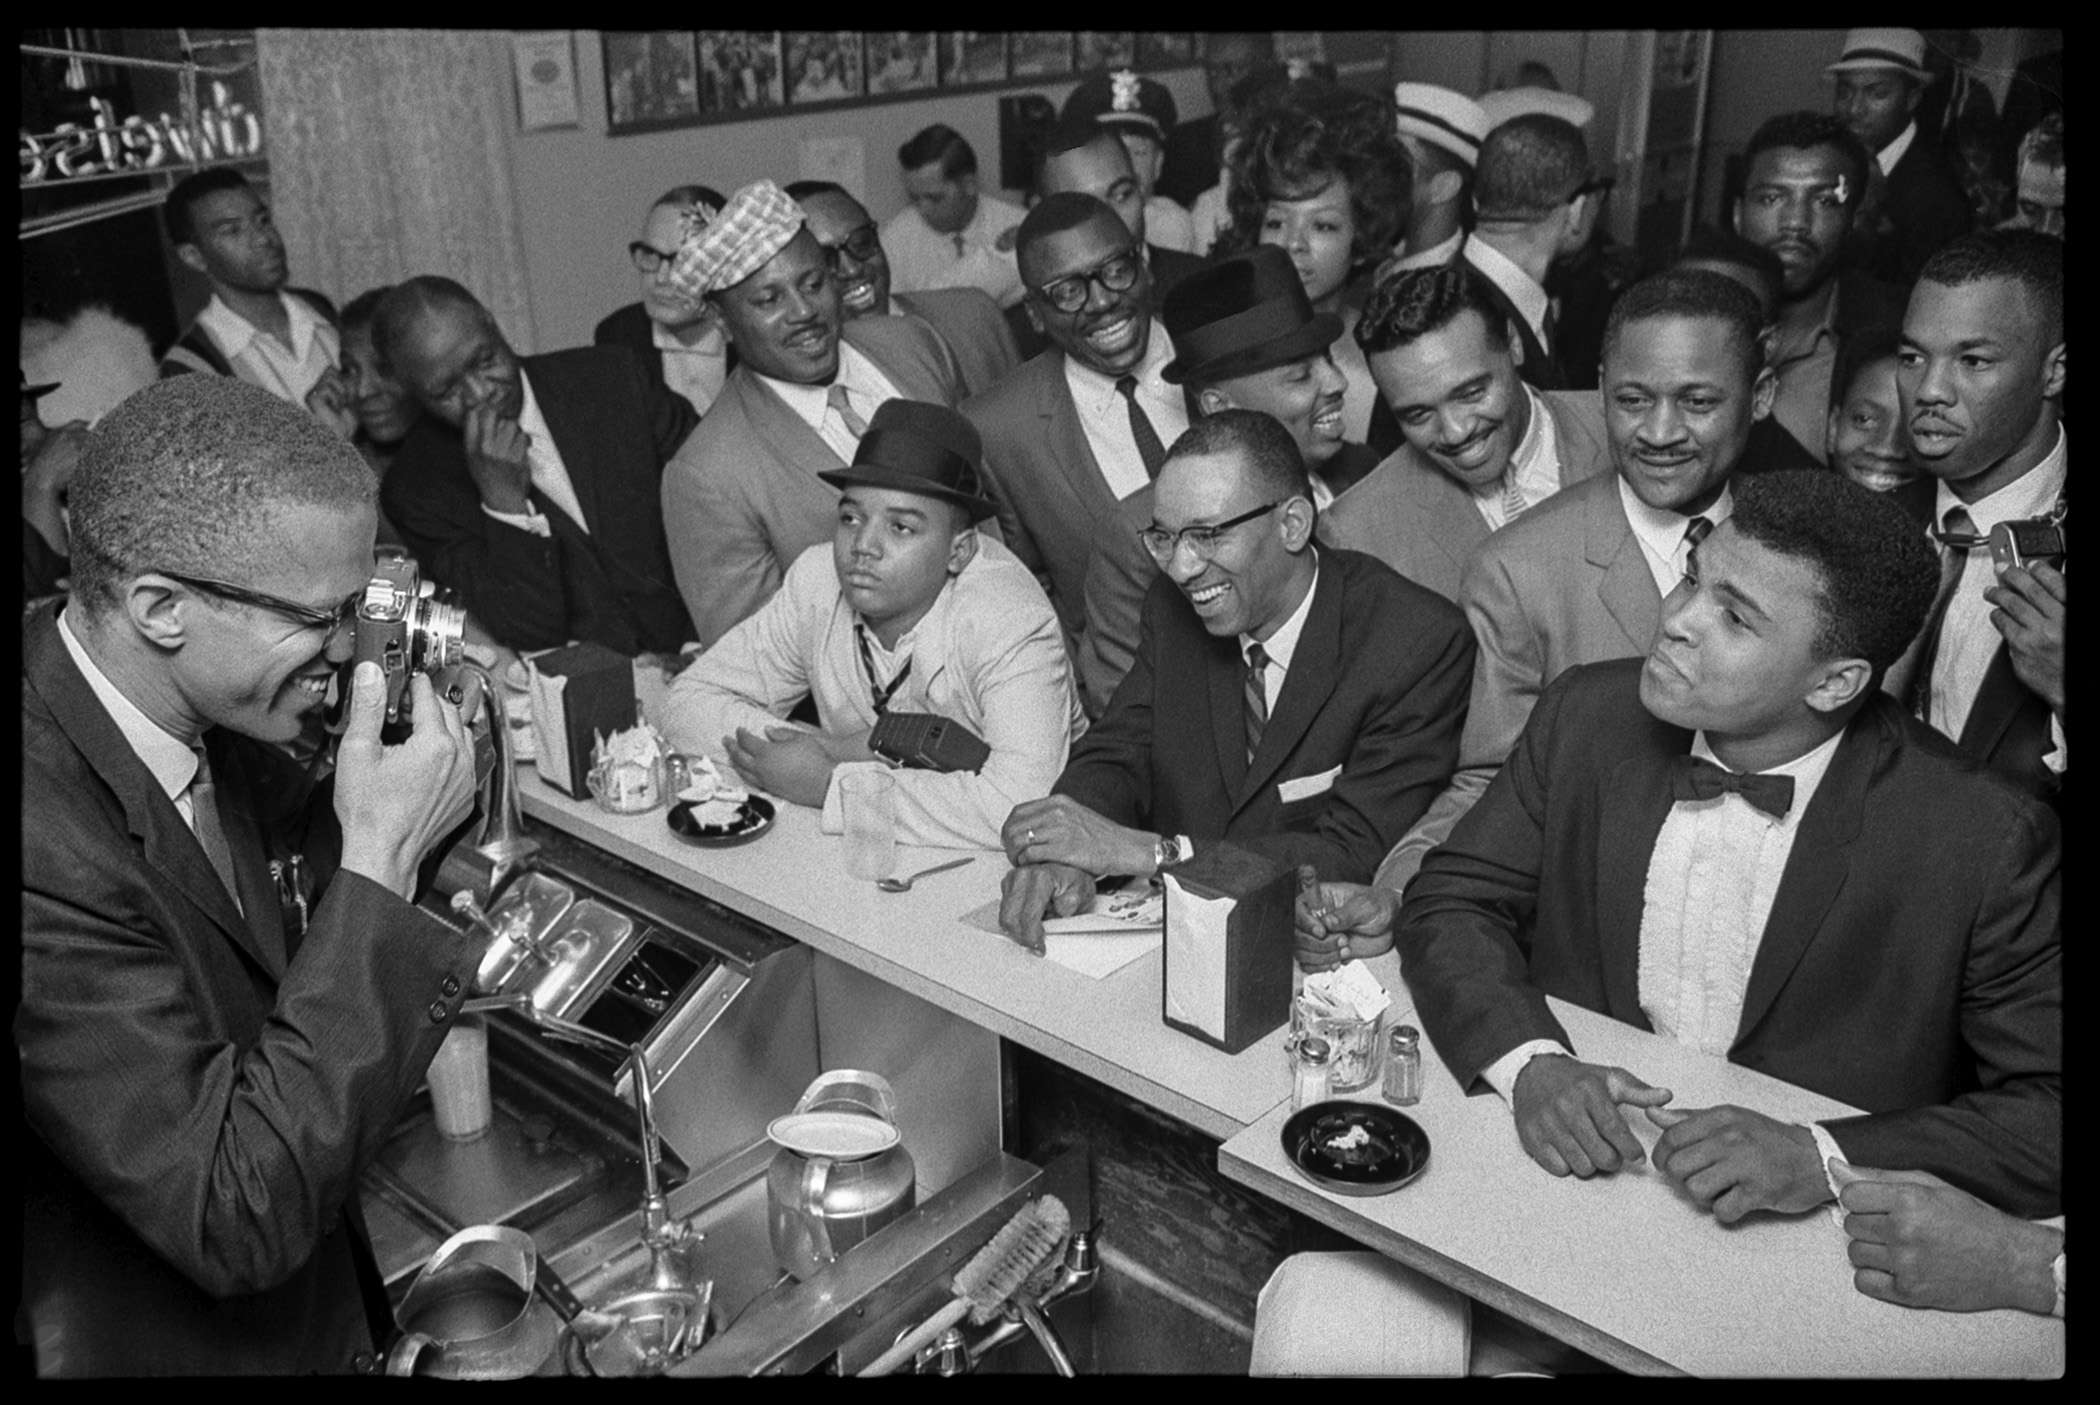 Caption: Malcolm X photographs Muhammad Ali after his victory over Sonny Liston in 1964. (Photo: Bob Gomel/CC)